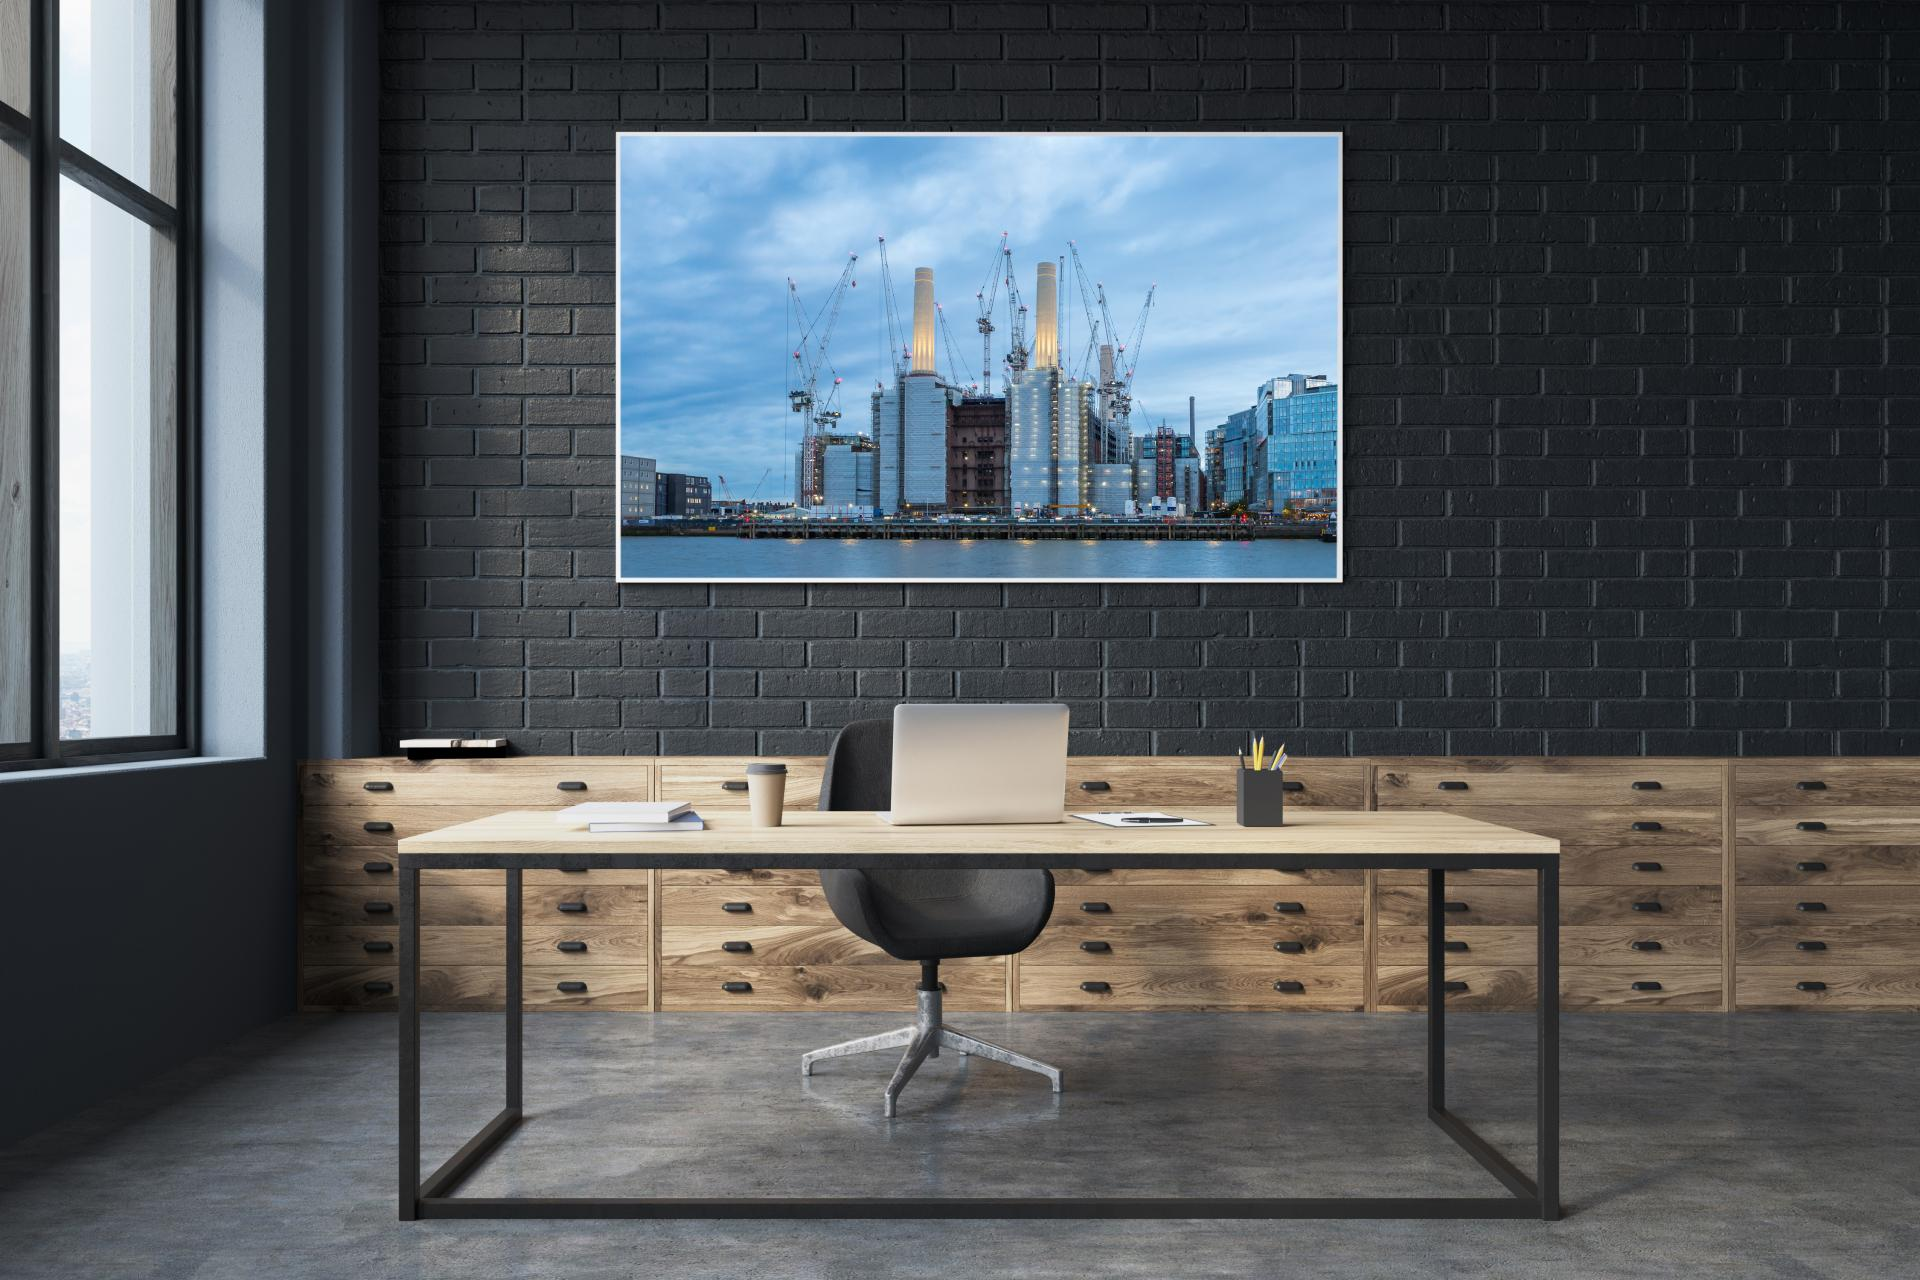 Battersea Power Station taken after sunset during blue hour, Liane Ryan Interior/Architectural Photographer